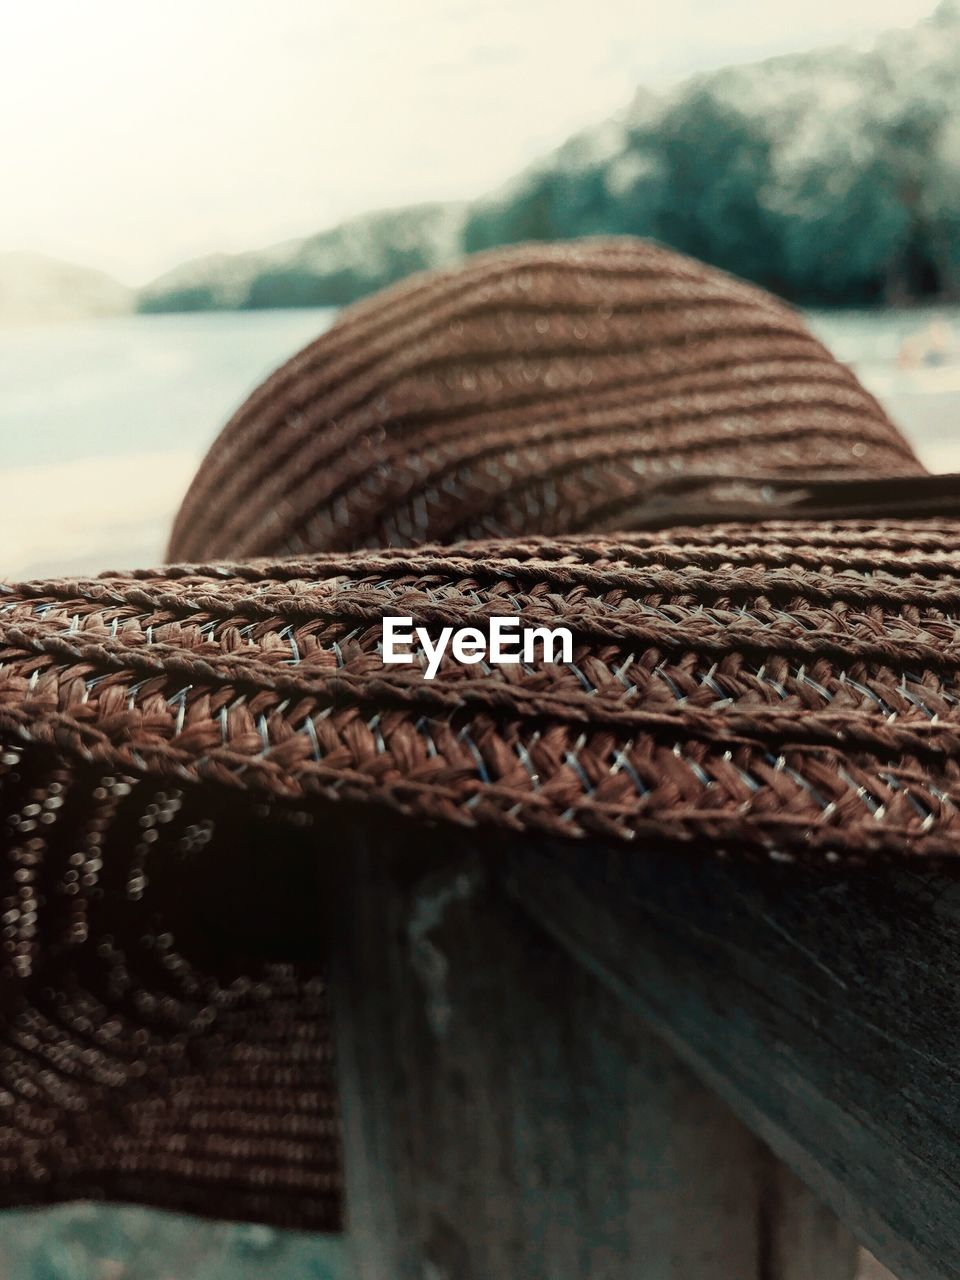 close-up, no people, pattern, brown, focus on foreground, textured, still life, wood - material, day, table, rope, hat, selective focus, wicker, outdoors, clothing, nature, textile, detail, personal accessory